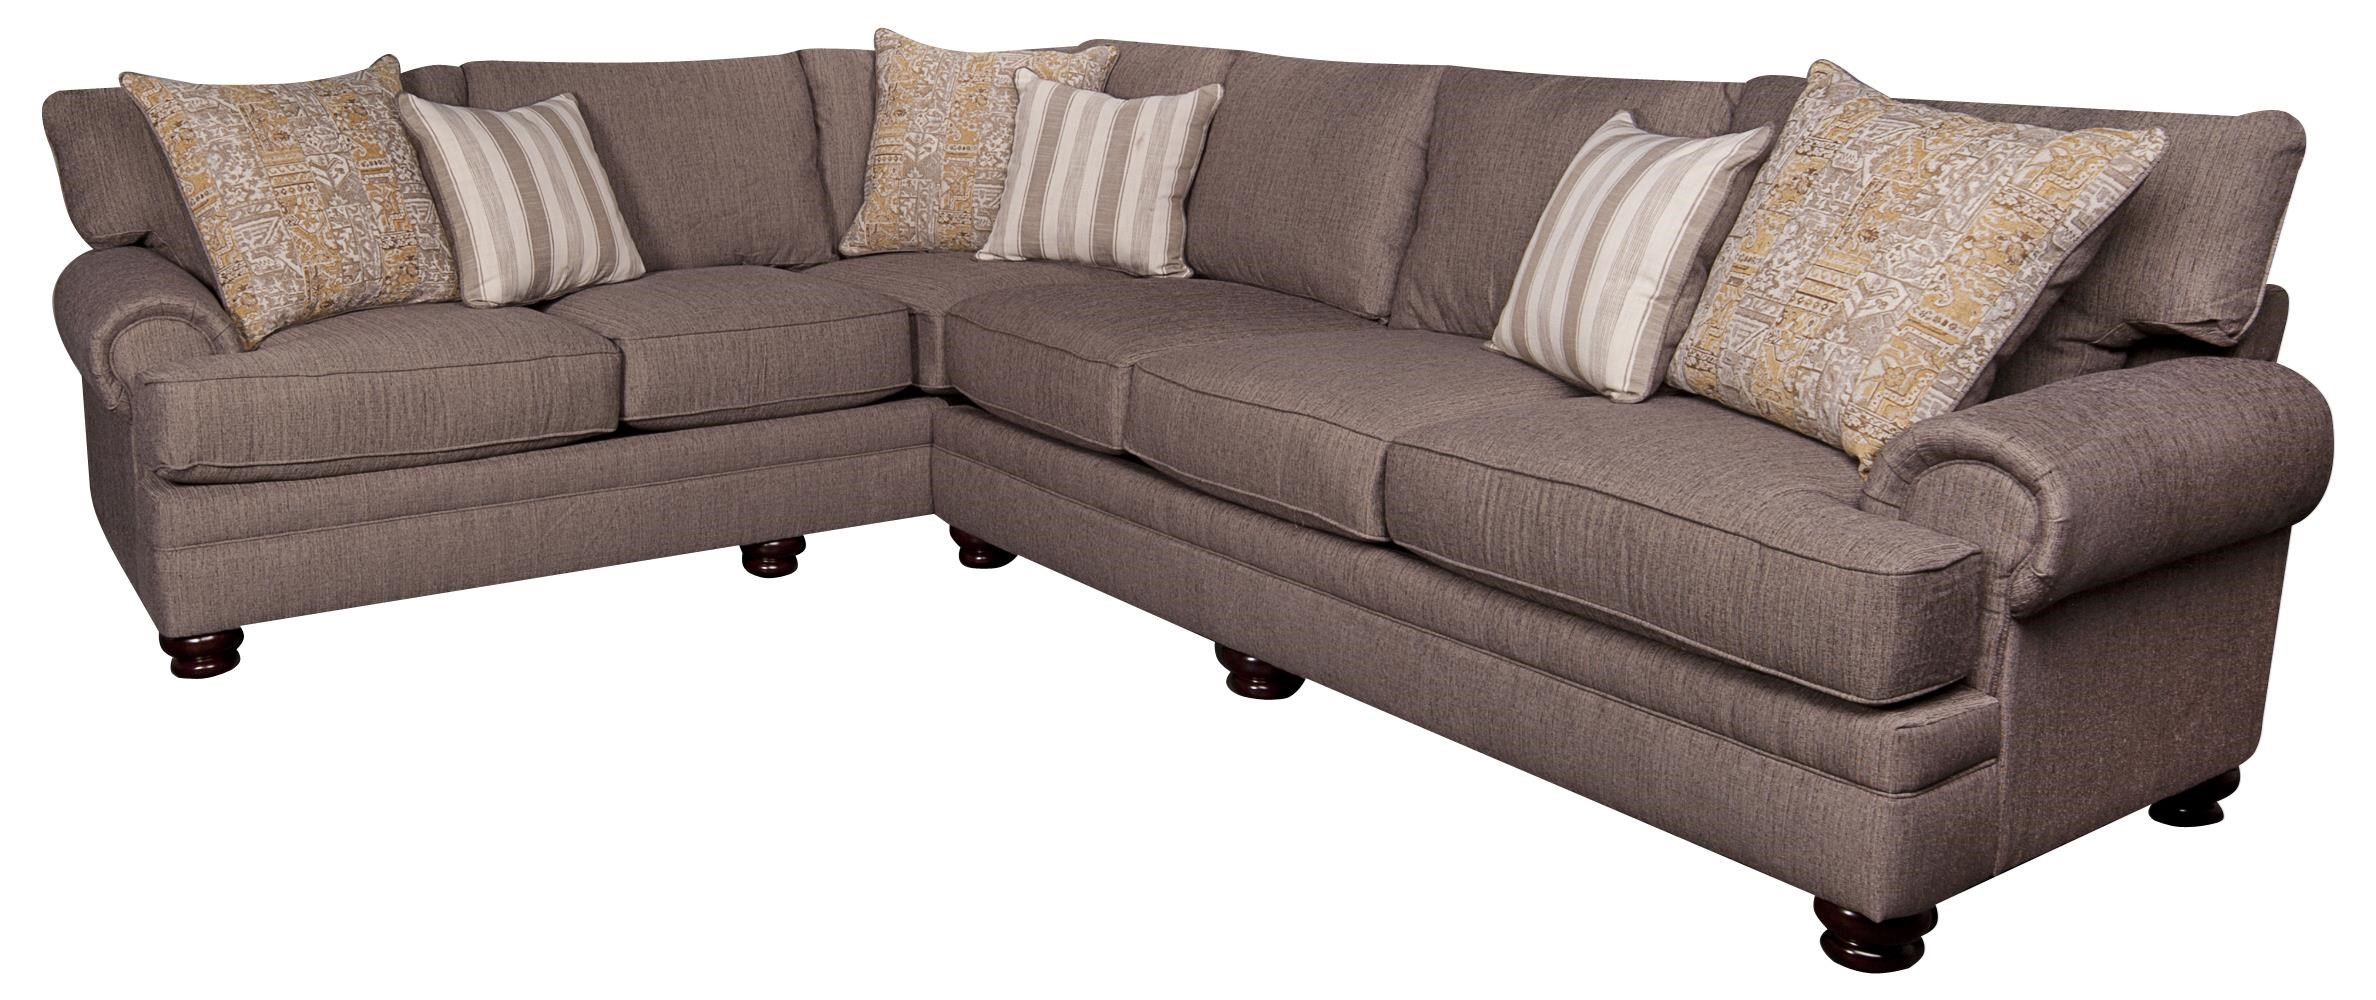 Morris Home Furnishings Cosette Cosette 2-Piece Sectional - Item Number: 134267445